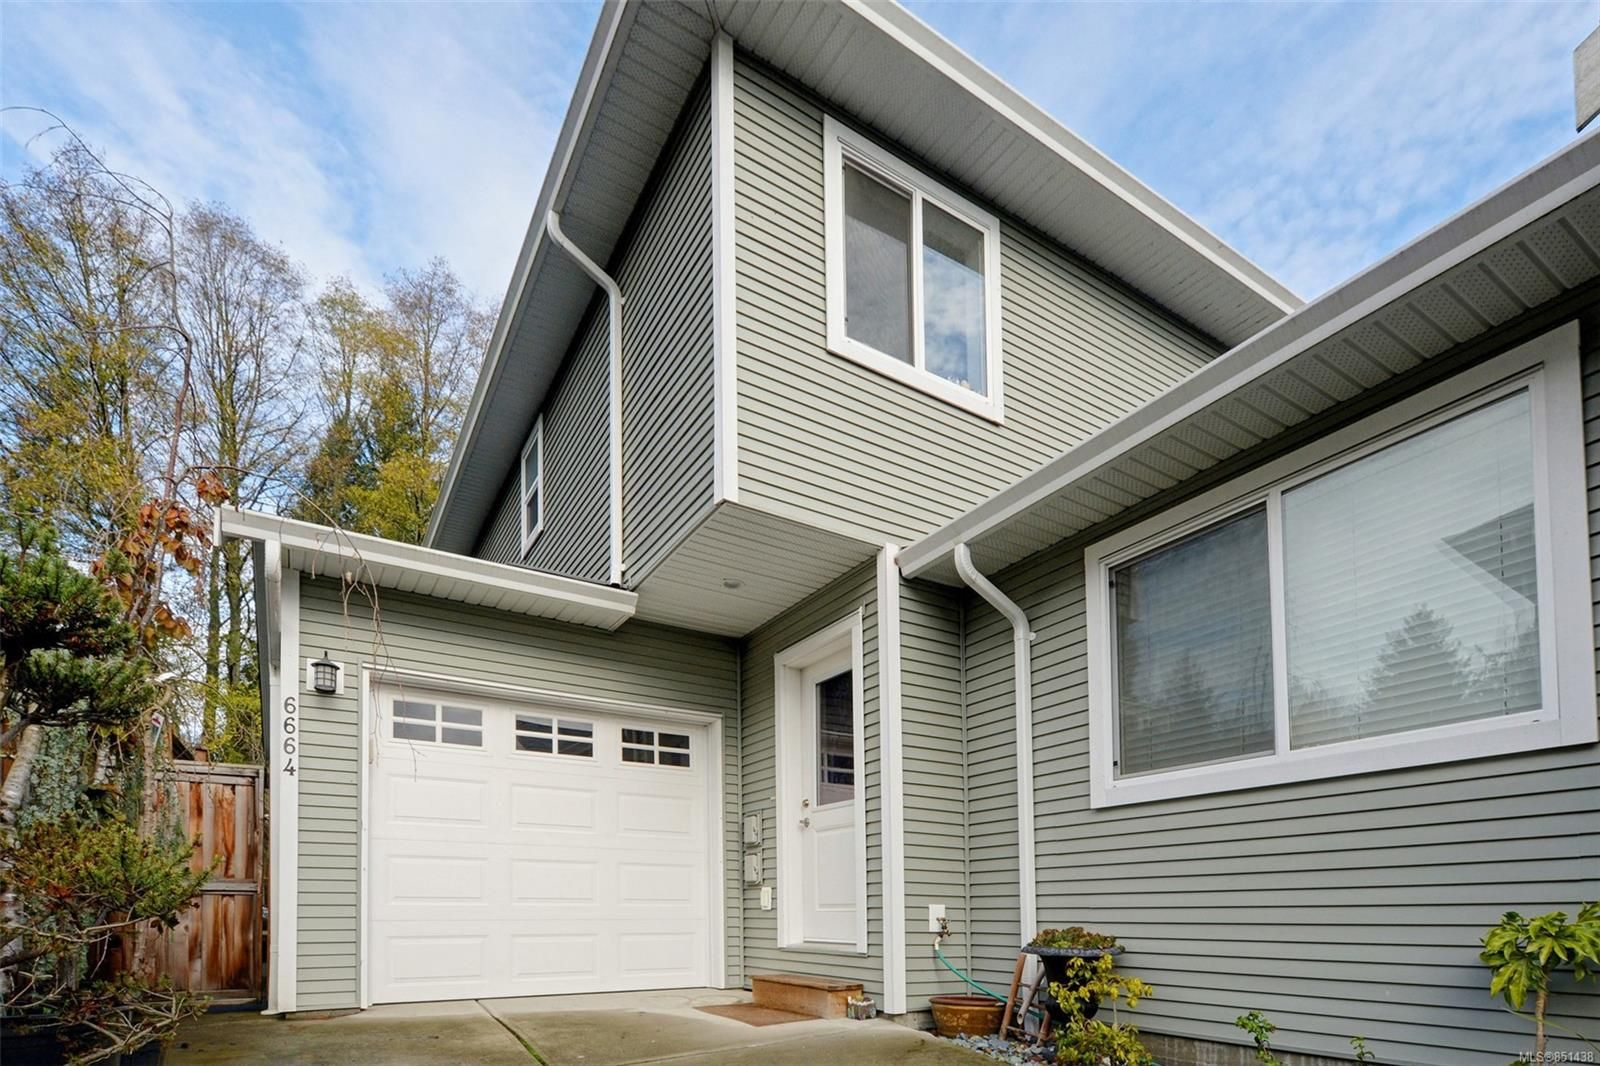 Main Photo: 6664 Rhodonite Dr in : Sk Broomhill Half Duplex for sale (Sooke)  : MLS®# 851438